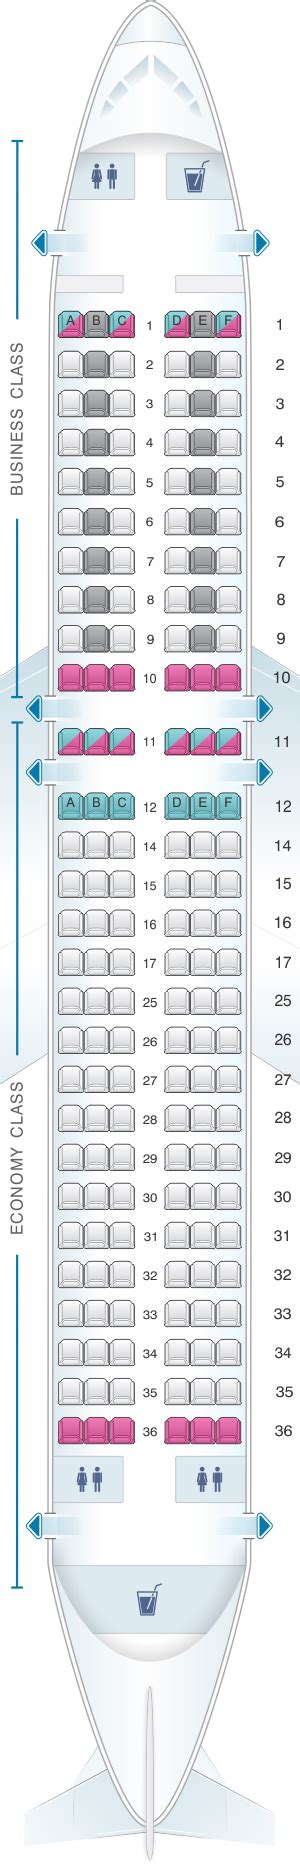 airbus a320 sieges plan de cabine swiss airbus a320 214 seatmaestro fr